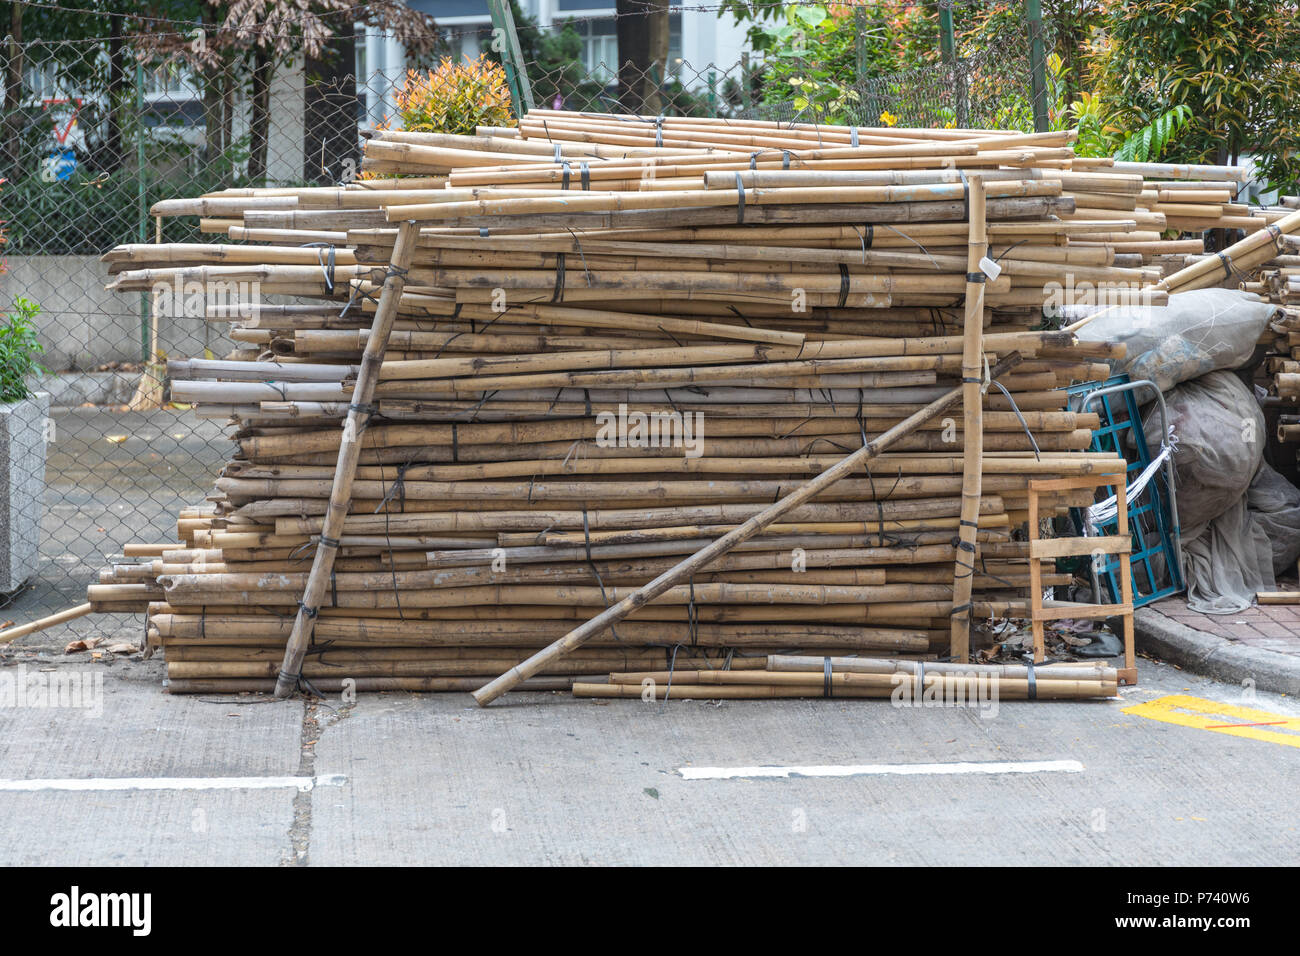 Big Stacks of Bamboo Sticks Poles at Construction Site - Stock Image